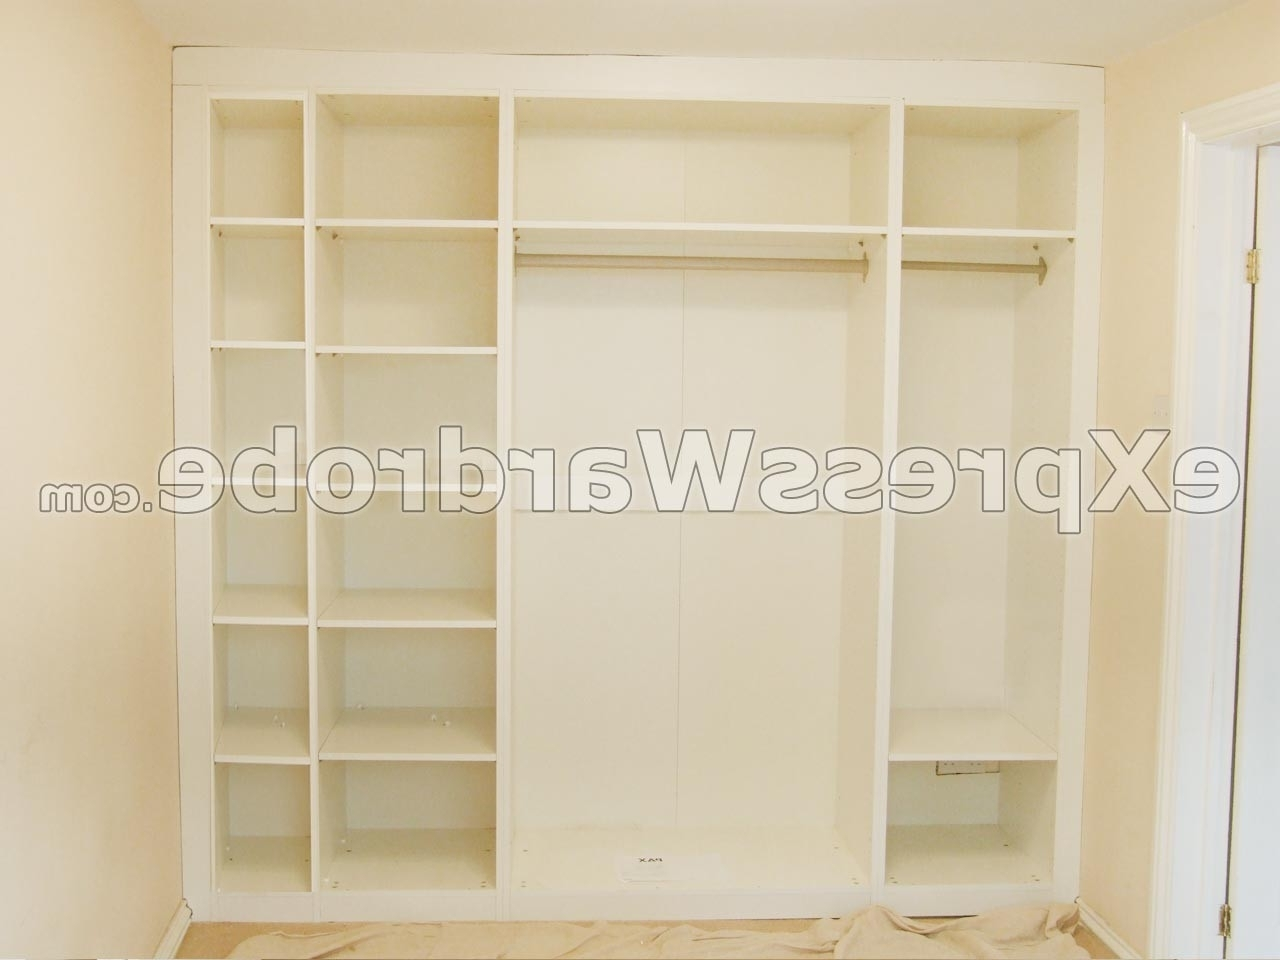 Cheap Wardrobes Intended For Well Known Awesome Modular Fitted Wardrobes – Badotcom (View 3 of 15)